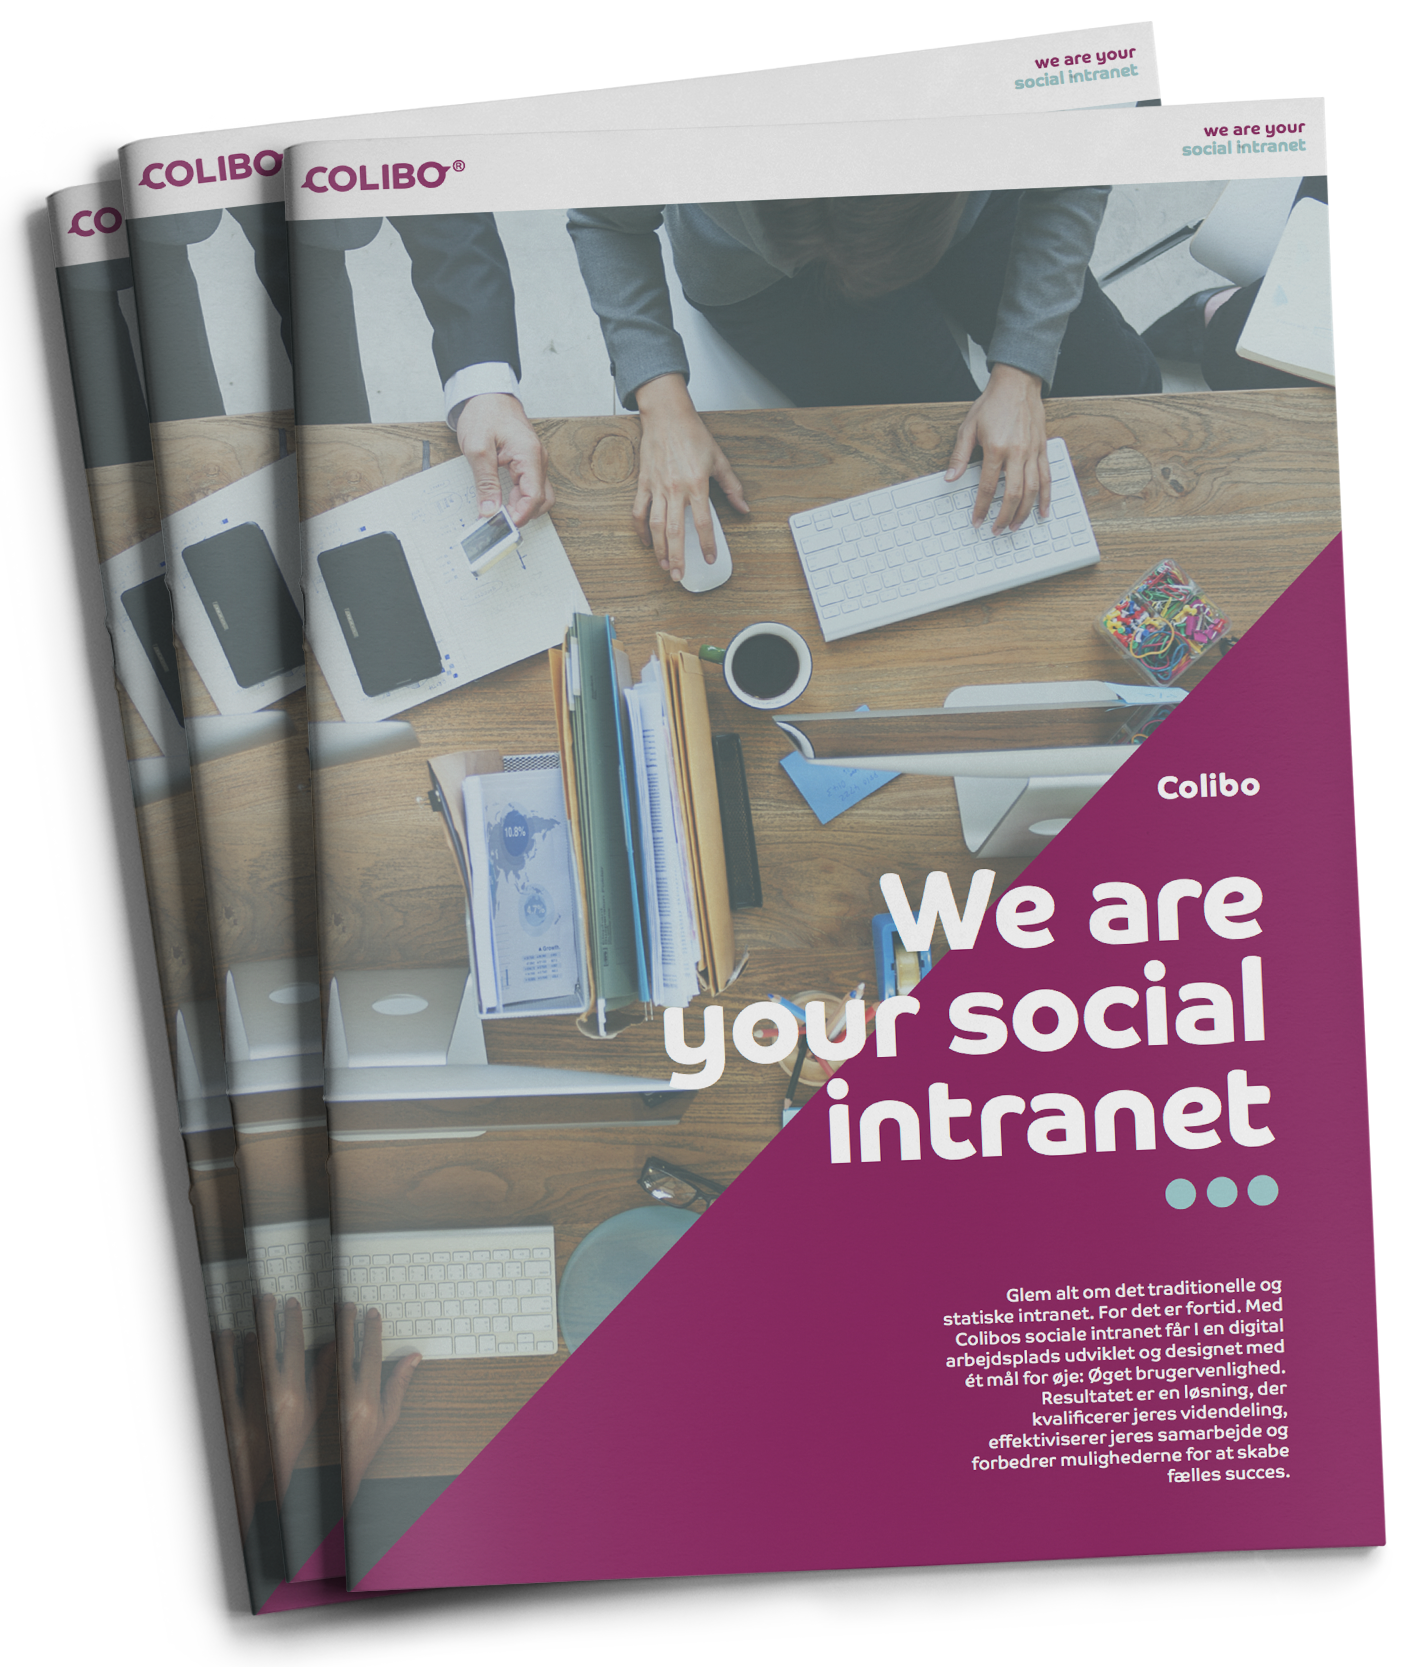 We are you modern and social intranet